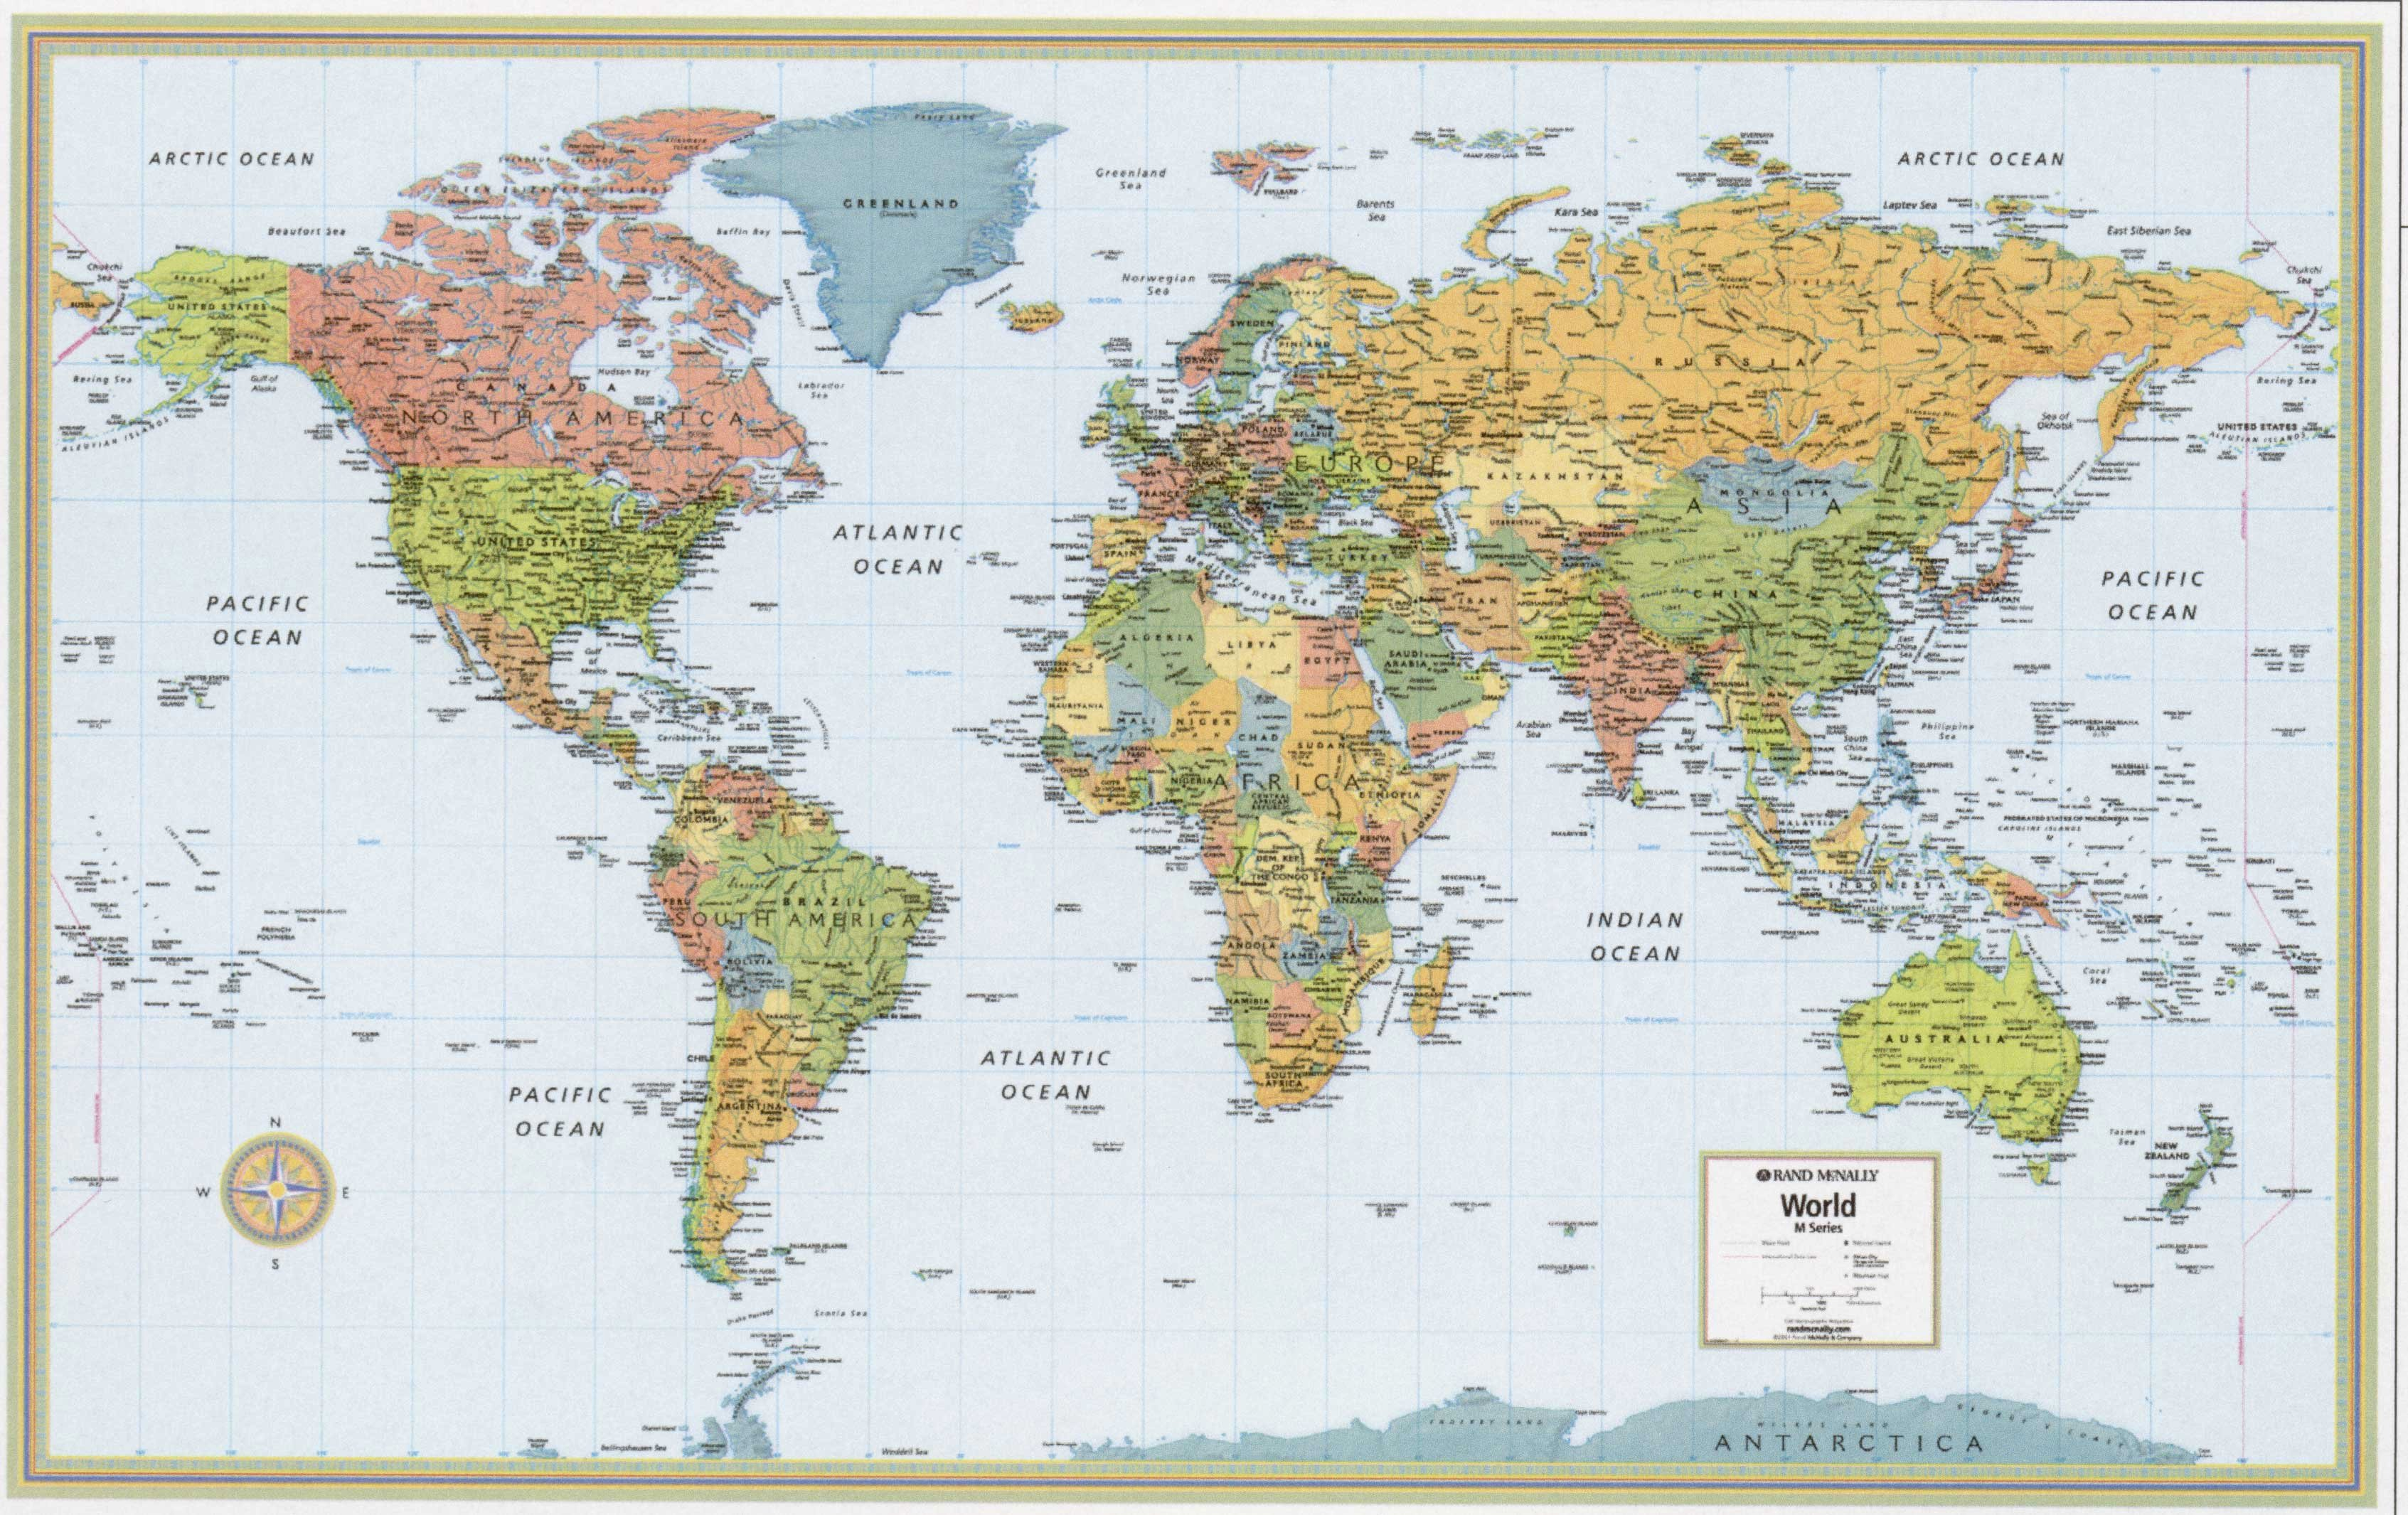 Free World Map Poster Luxury World Maps Free